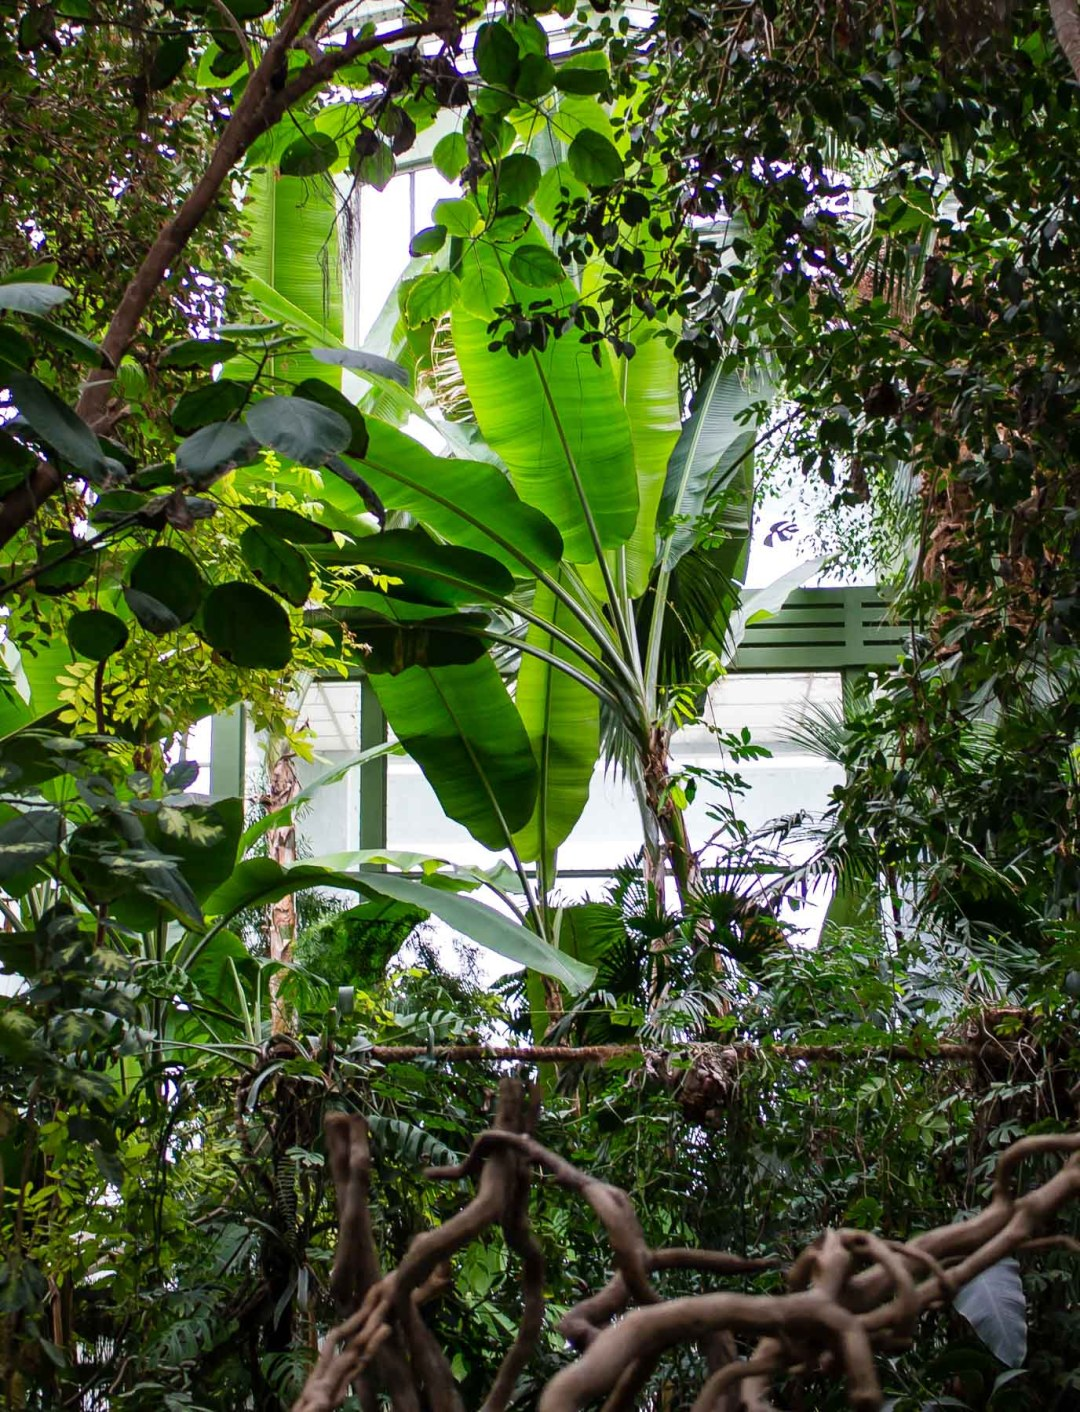 Les Grandes Serres (Grand Greenhouses & Botanical Garden)